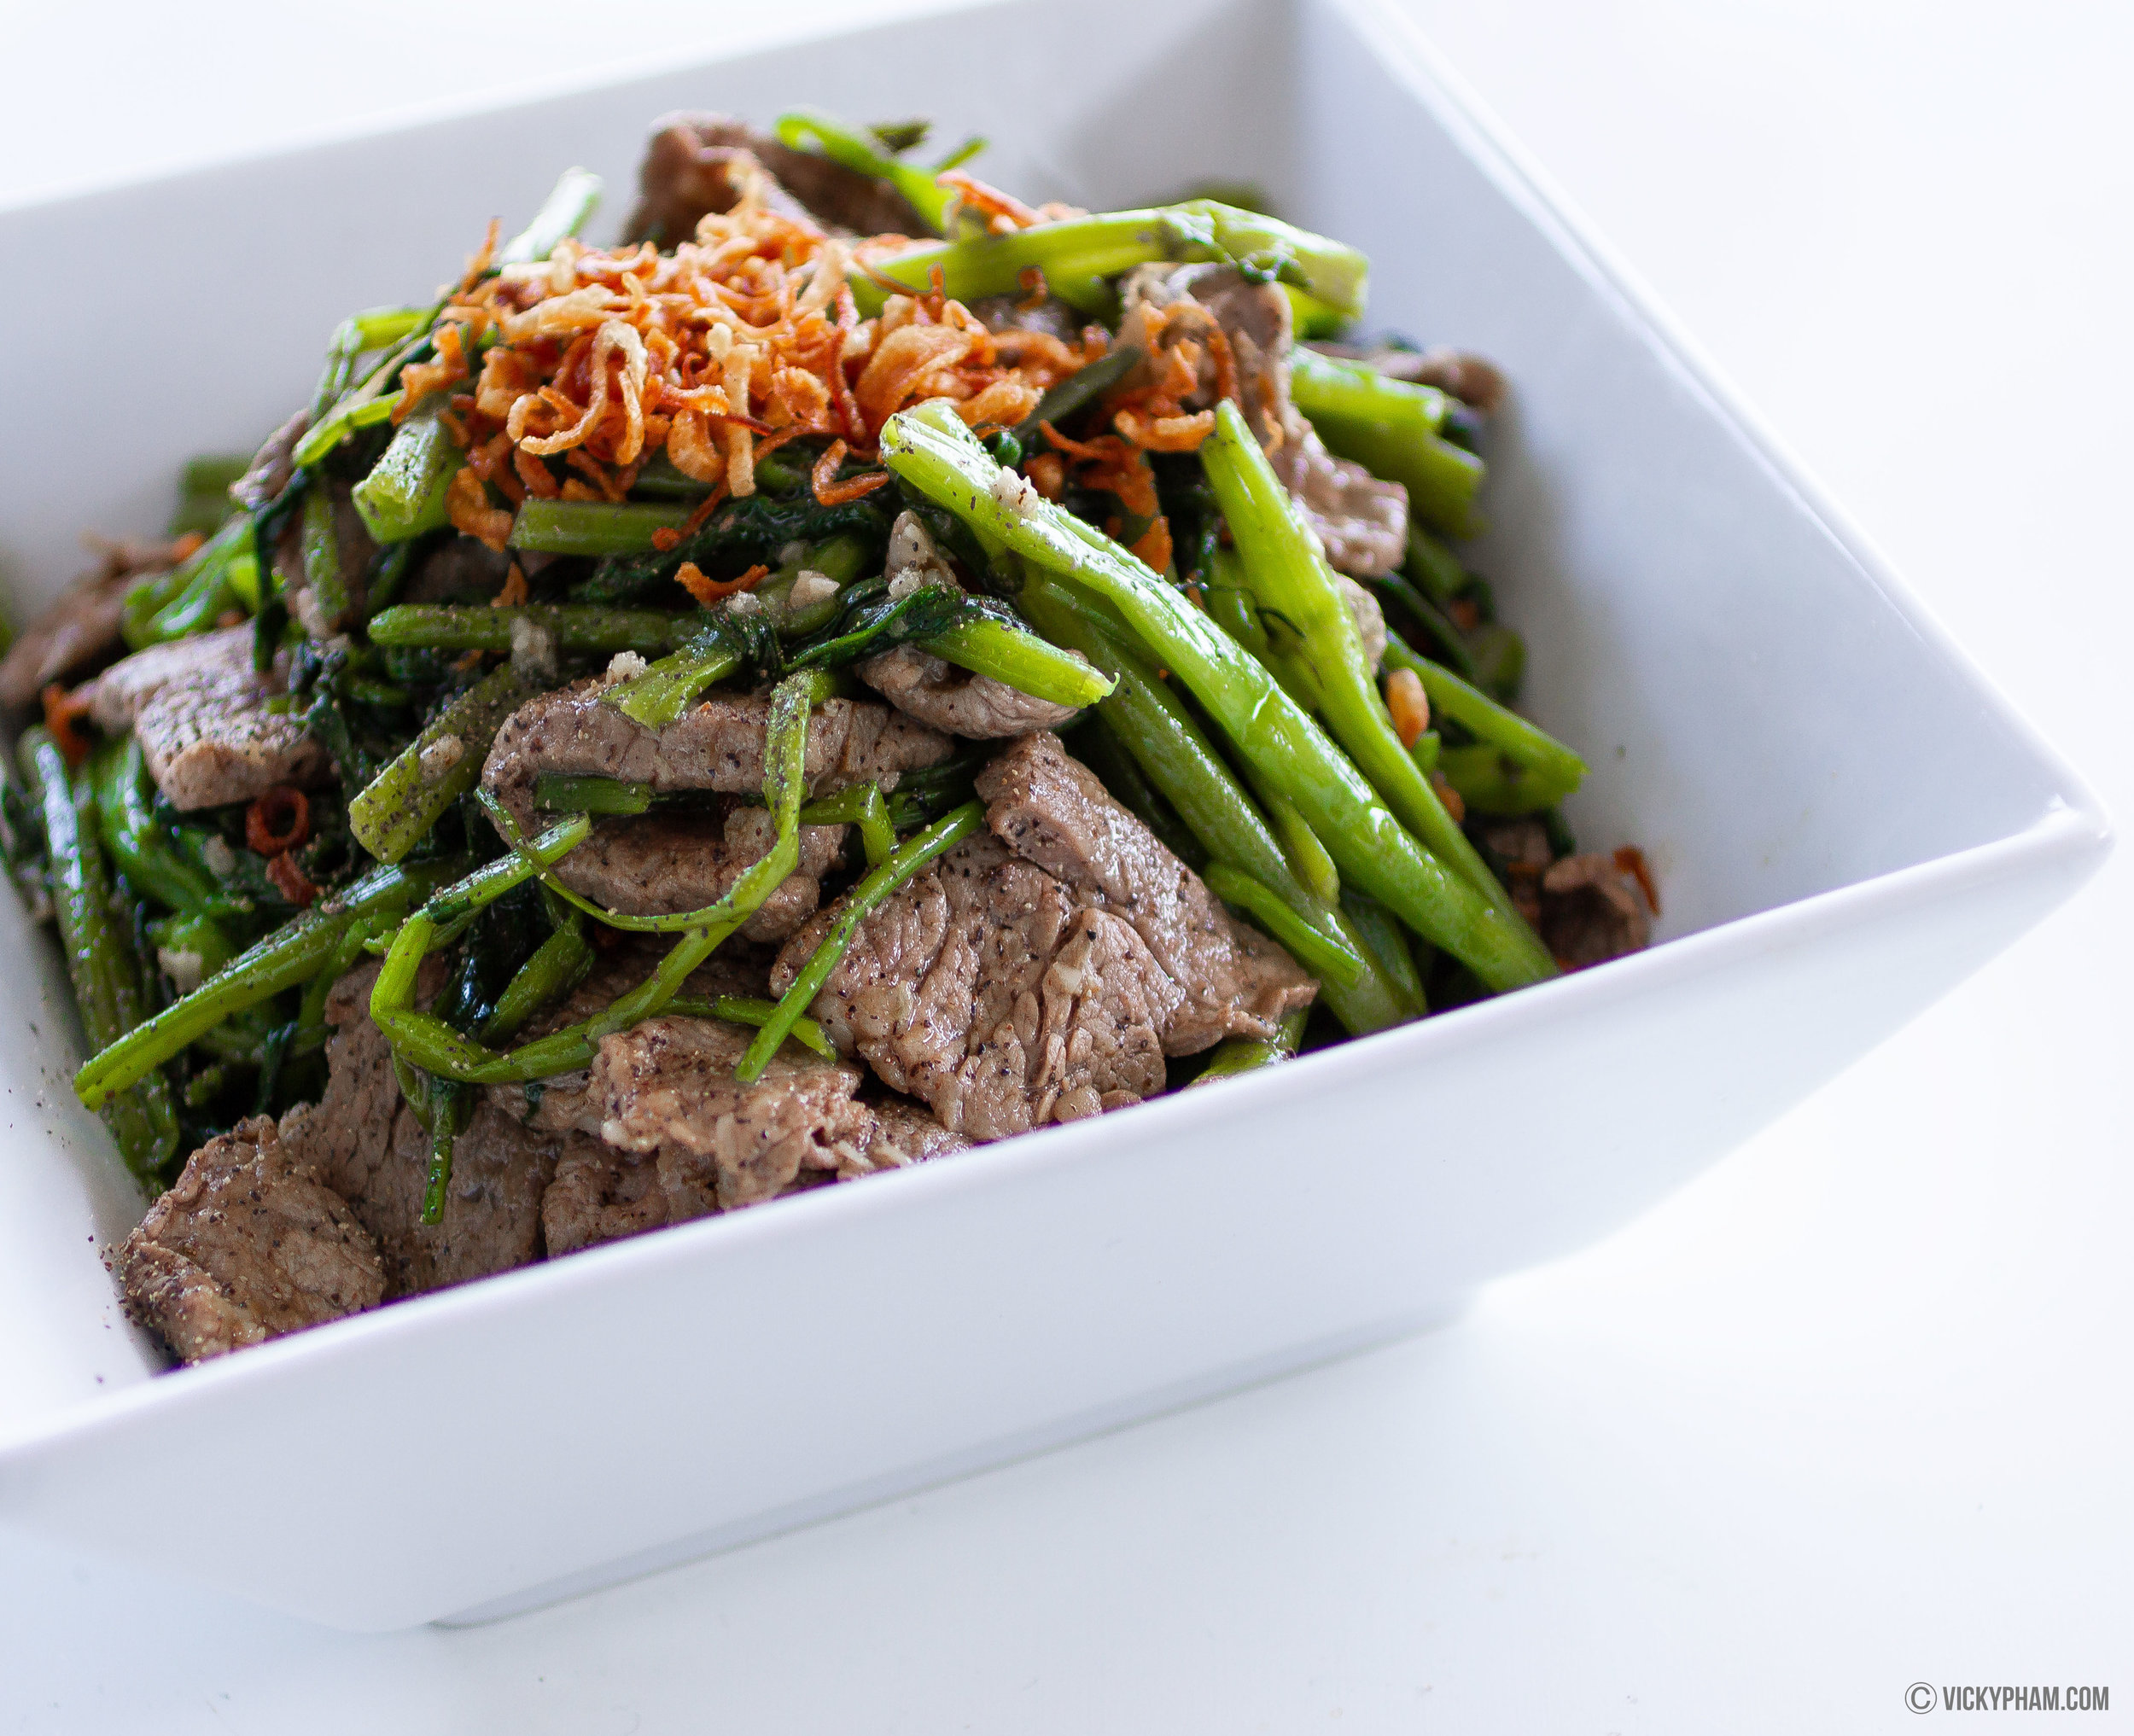 Stir-fried Water Spinach/Morning with Beef (Rau Muong Xao Thit Bo)